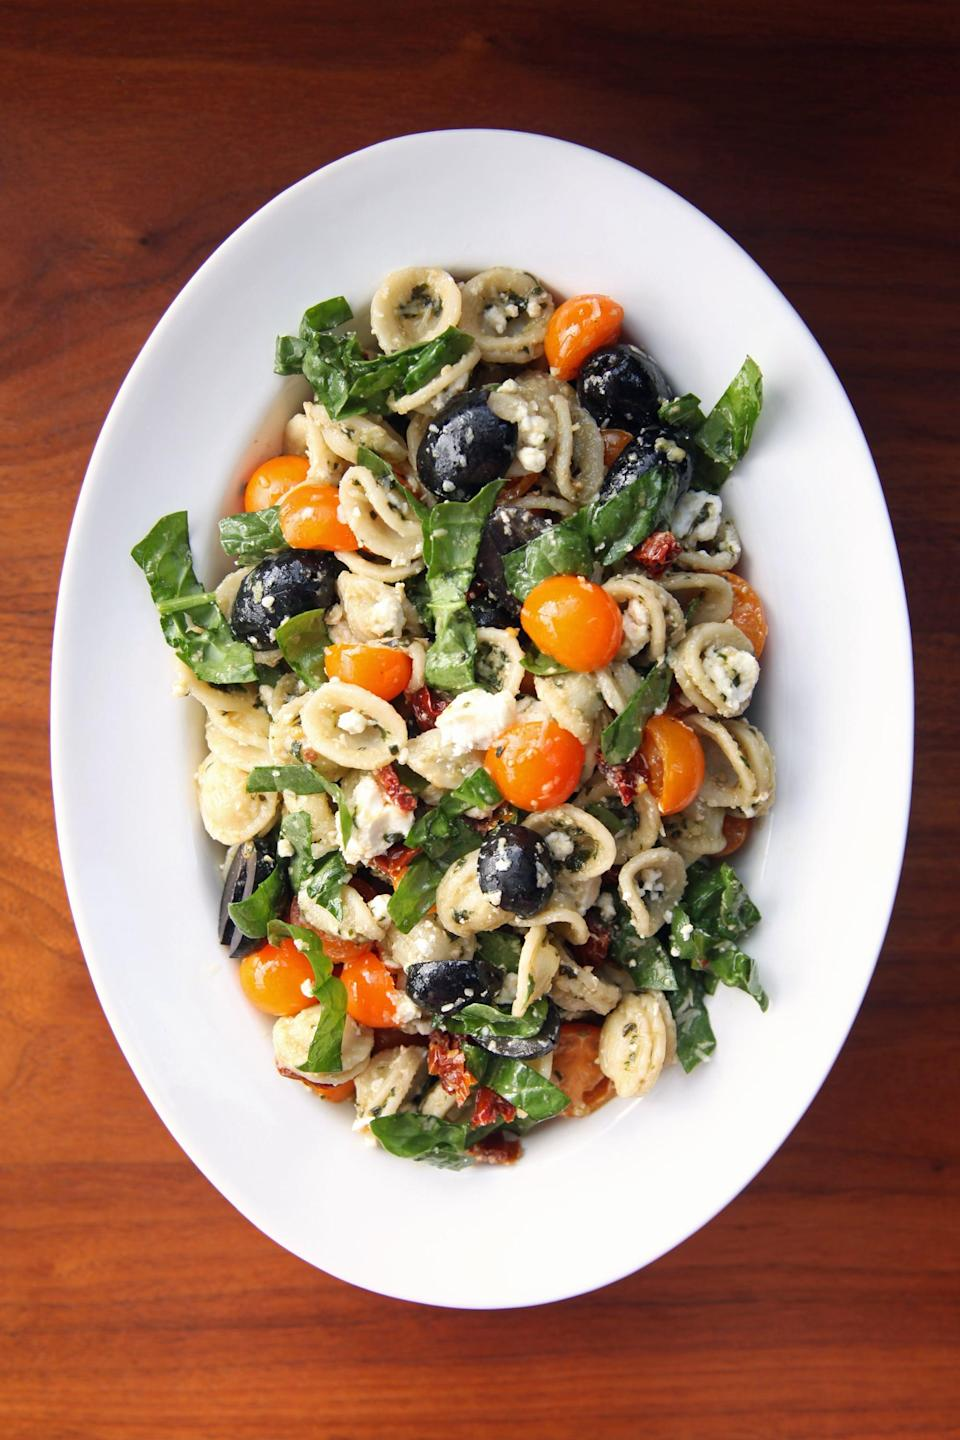 """<p>It's a fact: there's nothing better than pesto. This easy pesto pasta can be served warm or cold depending on your mood. You can add as many antipasto elements you want like olives, tangy cheese, and marinated vegetables, all of which are wonderful. Fresh veggies - spinach, tomatoes, mushrooms, and zucchini - also work well as does a protein such as tofu, grilled chicken, or salami. The options are endless! </p> <p><strong>Get the recipe:</strong> <a href=""""https://www.popsugar.com/food/Pesto-Pasta-Salad-Recipe-8810619"""" class=""""link rapid-noclick-resp"""" rel=""""nofollow noopener"""" target=""""_blank"""" data-ylk=""""slk:Mediterranean pesto pasta salad"""">Mediterranean pesto pasta salad</a></p>"""